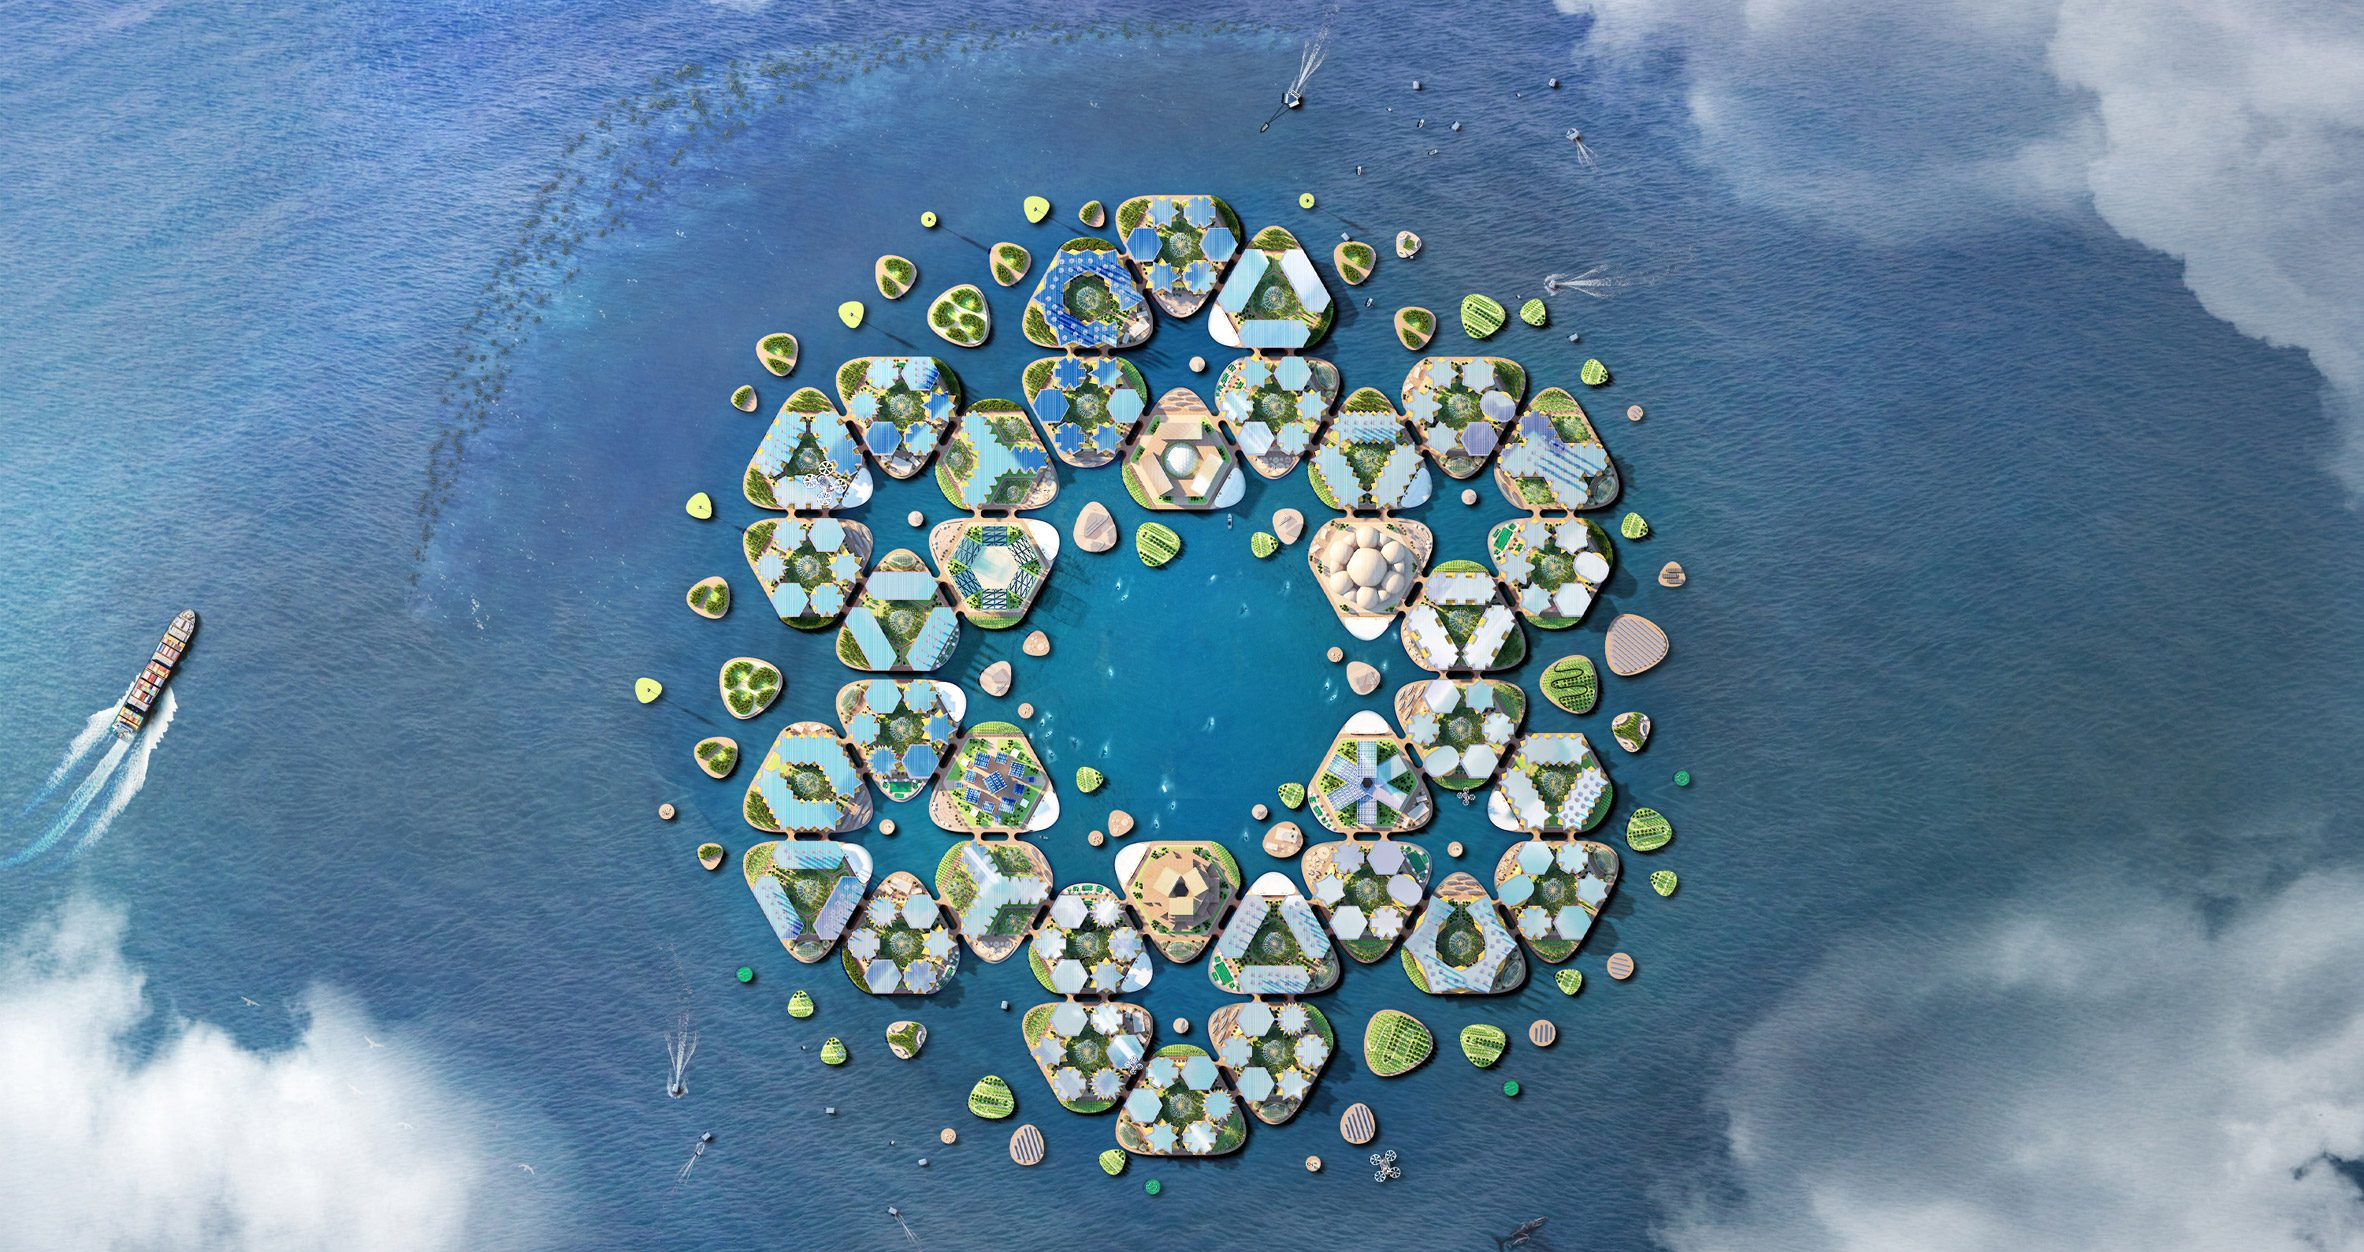 oceanix-city-floating-big-un-habitat-mit_dezeen_2364_col_11-e1554406082431